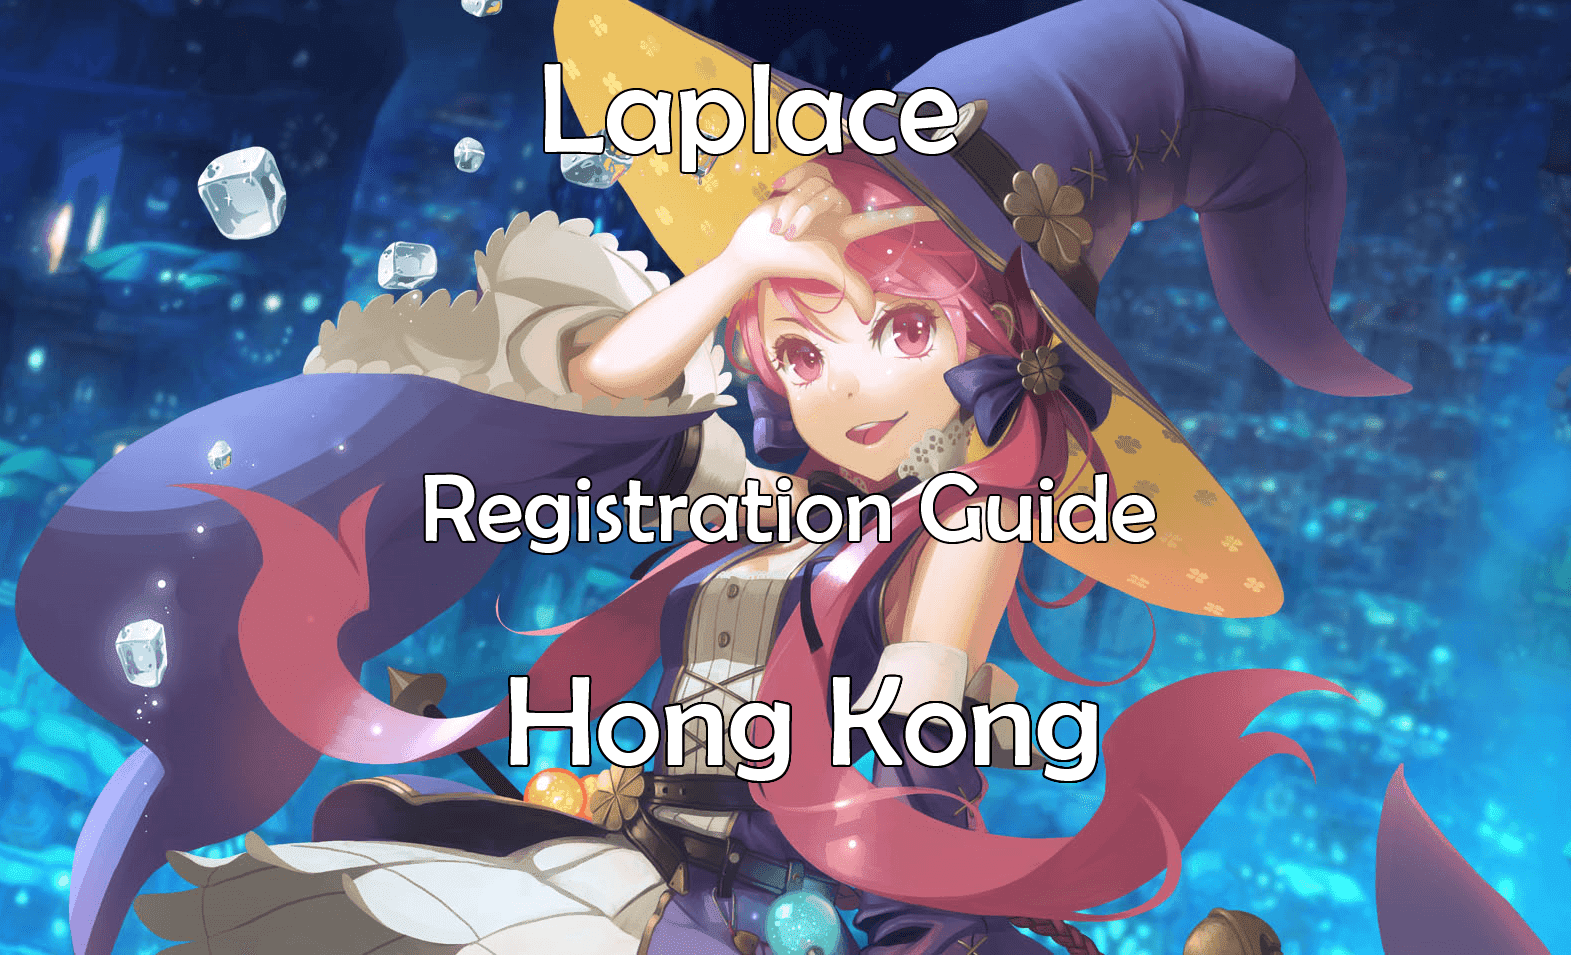 Laplace Hong Kong Registration Guide